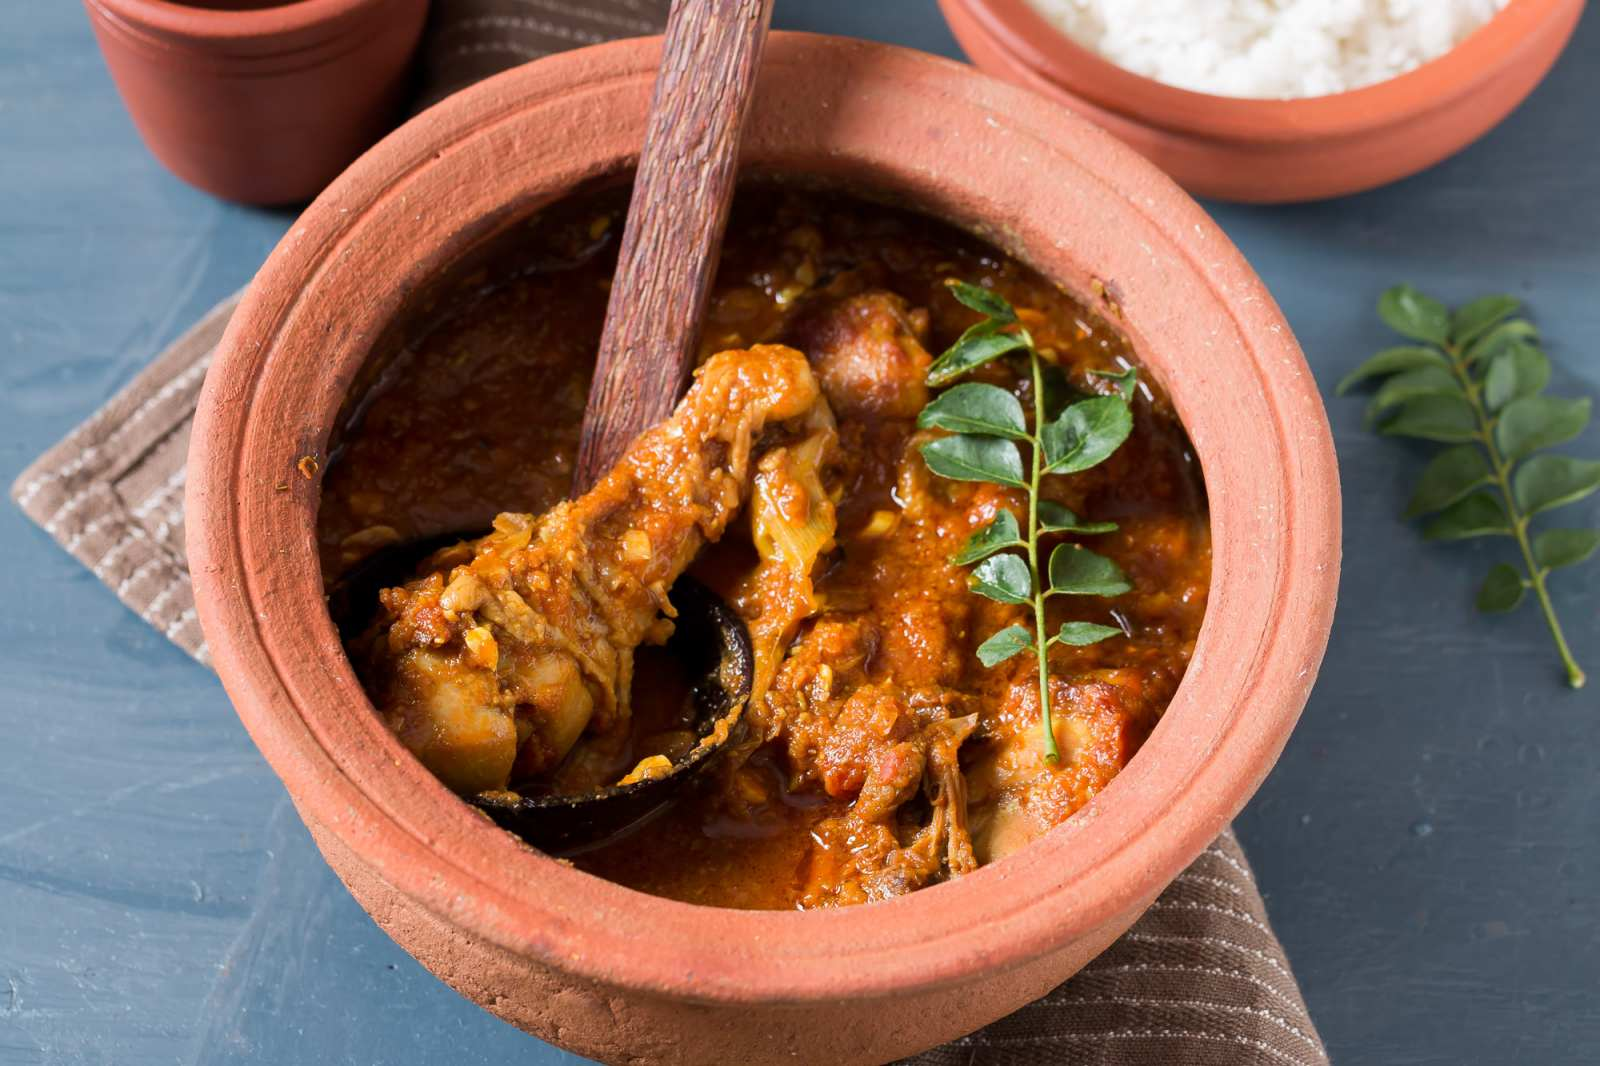 Sri lankan chicken curry recipe by archanas kitchen sri lankan chicken curry recipe forumfinder Image collections